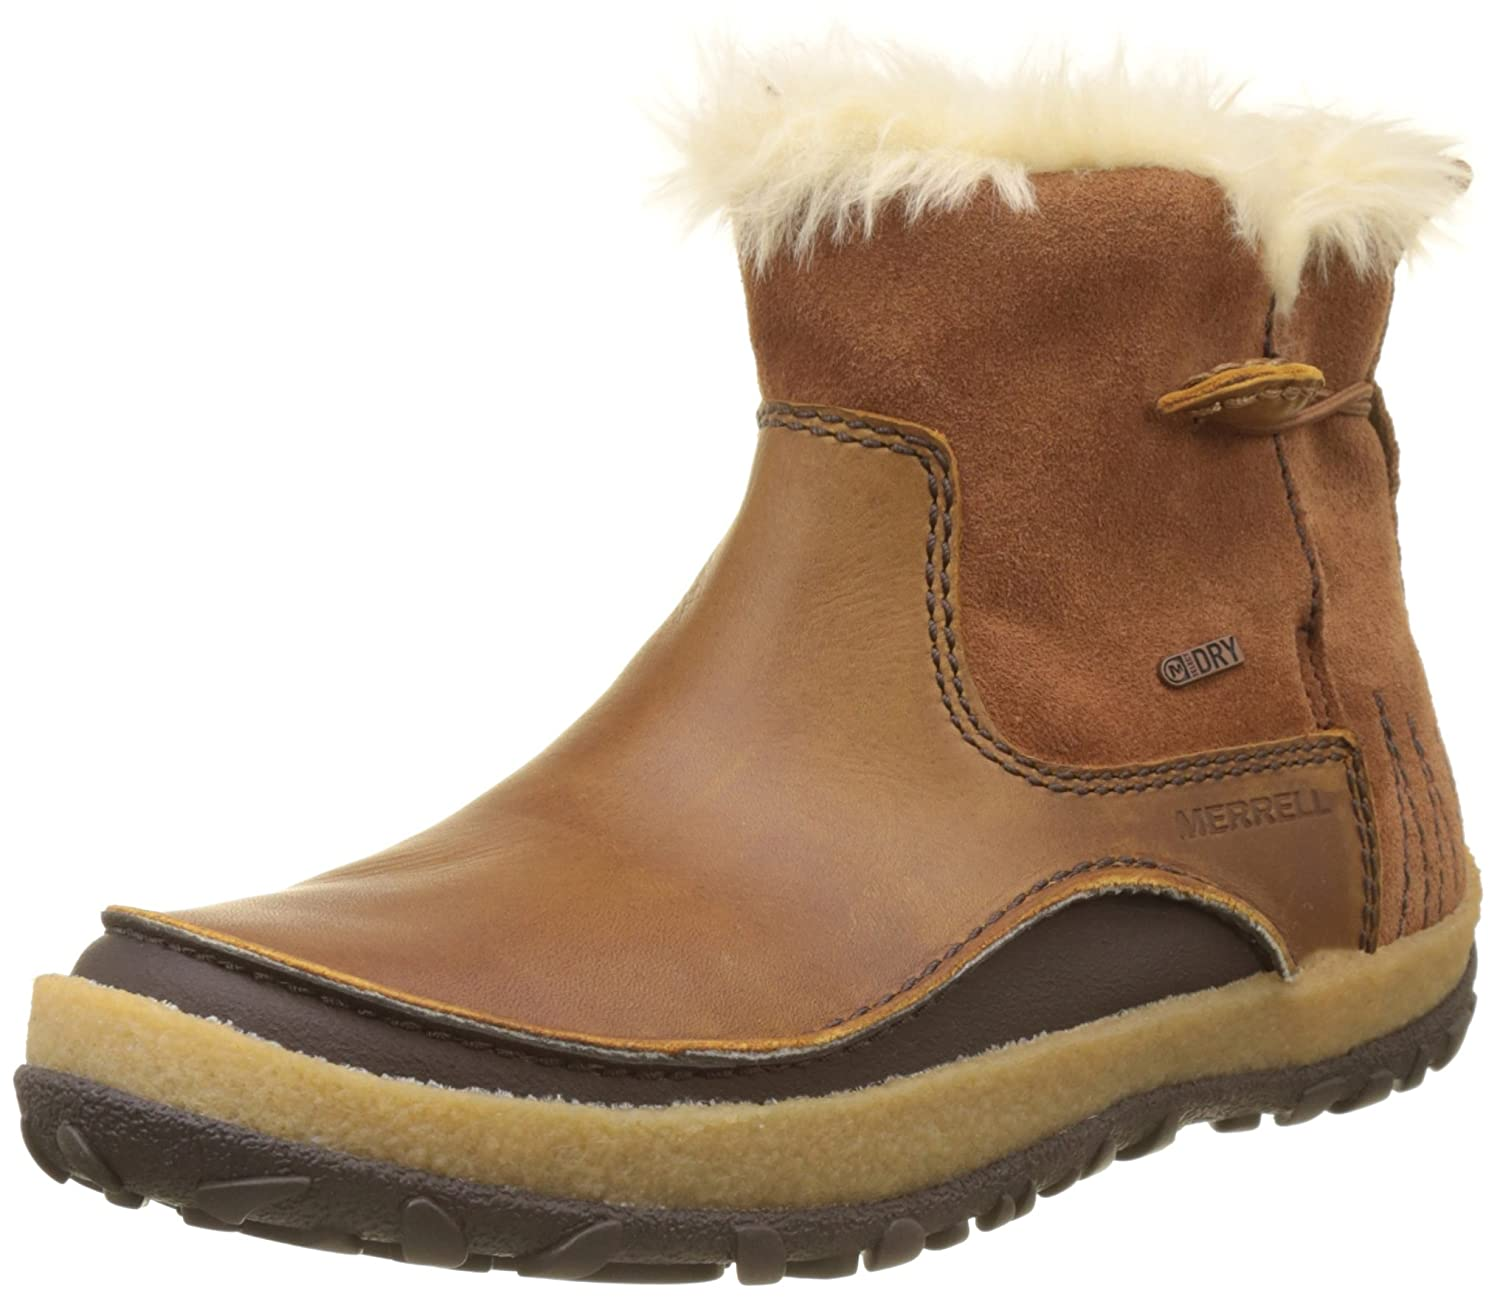 Merrell Women's Tremblant Pull on Polar Waterproof Snow Boot B01MSAIAWF 9.5 B(M) US|Merrell Oak